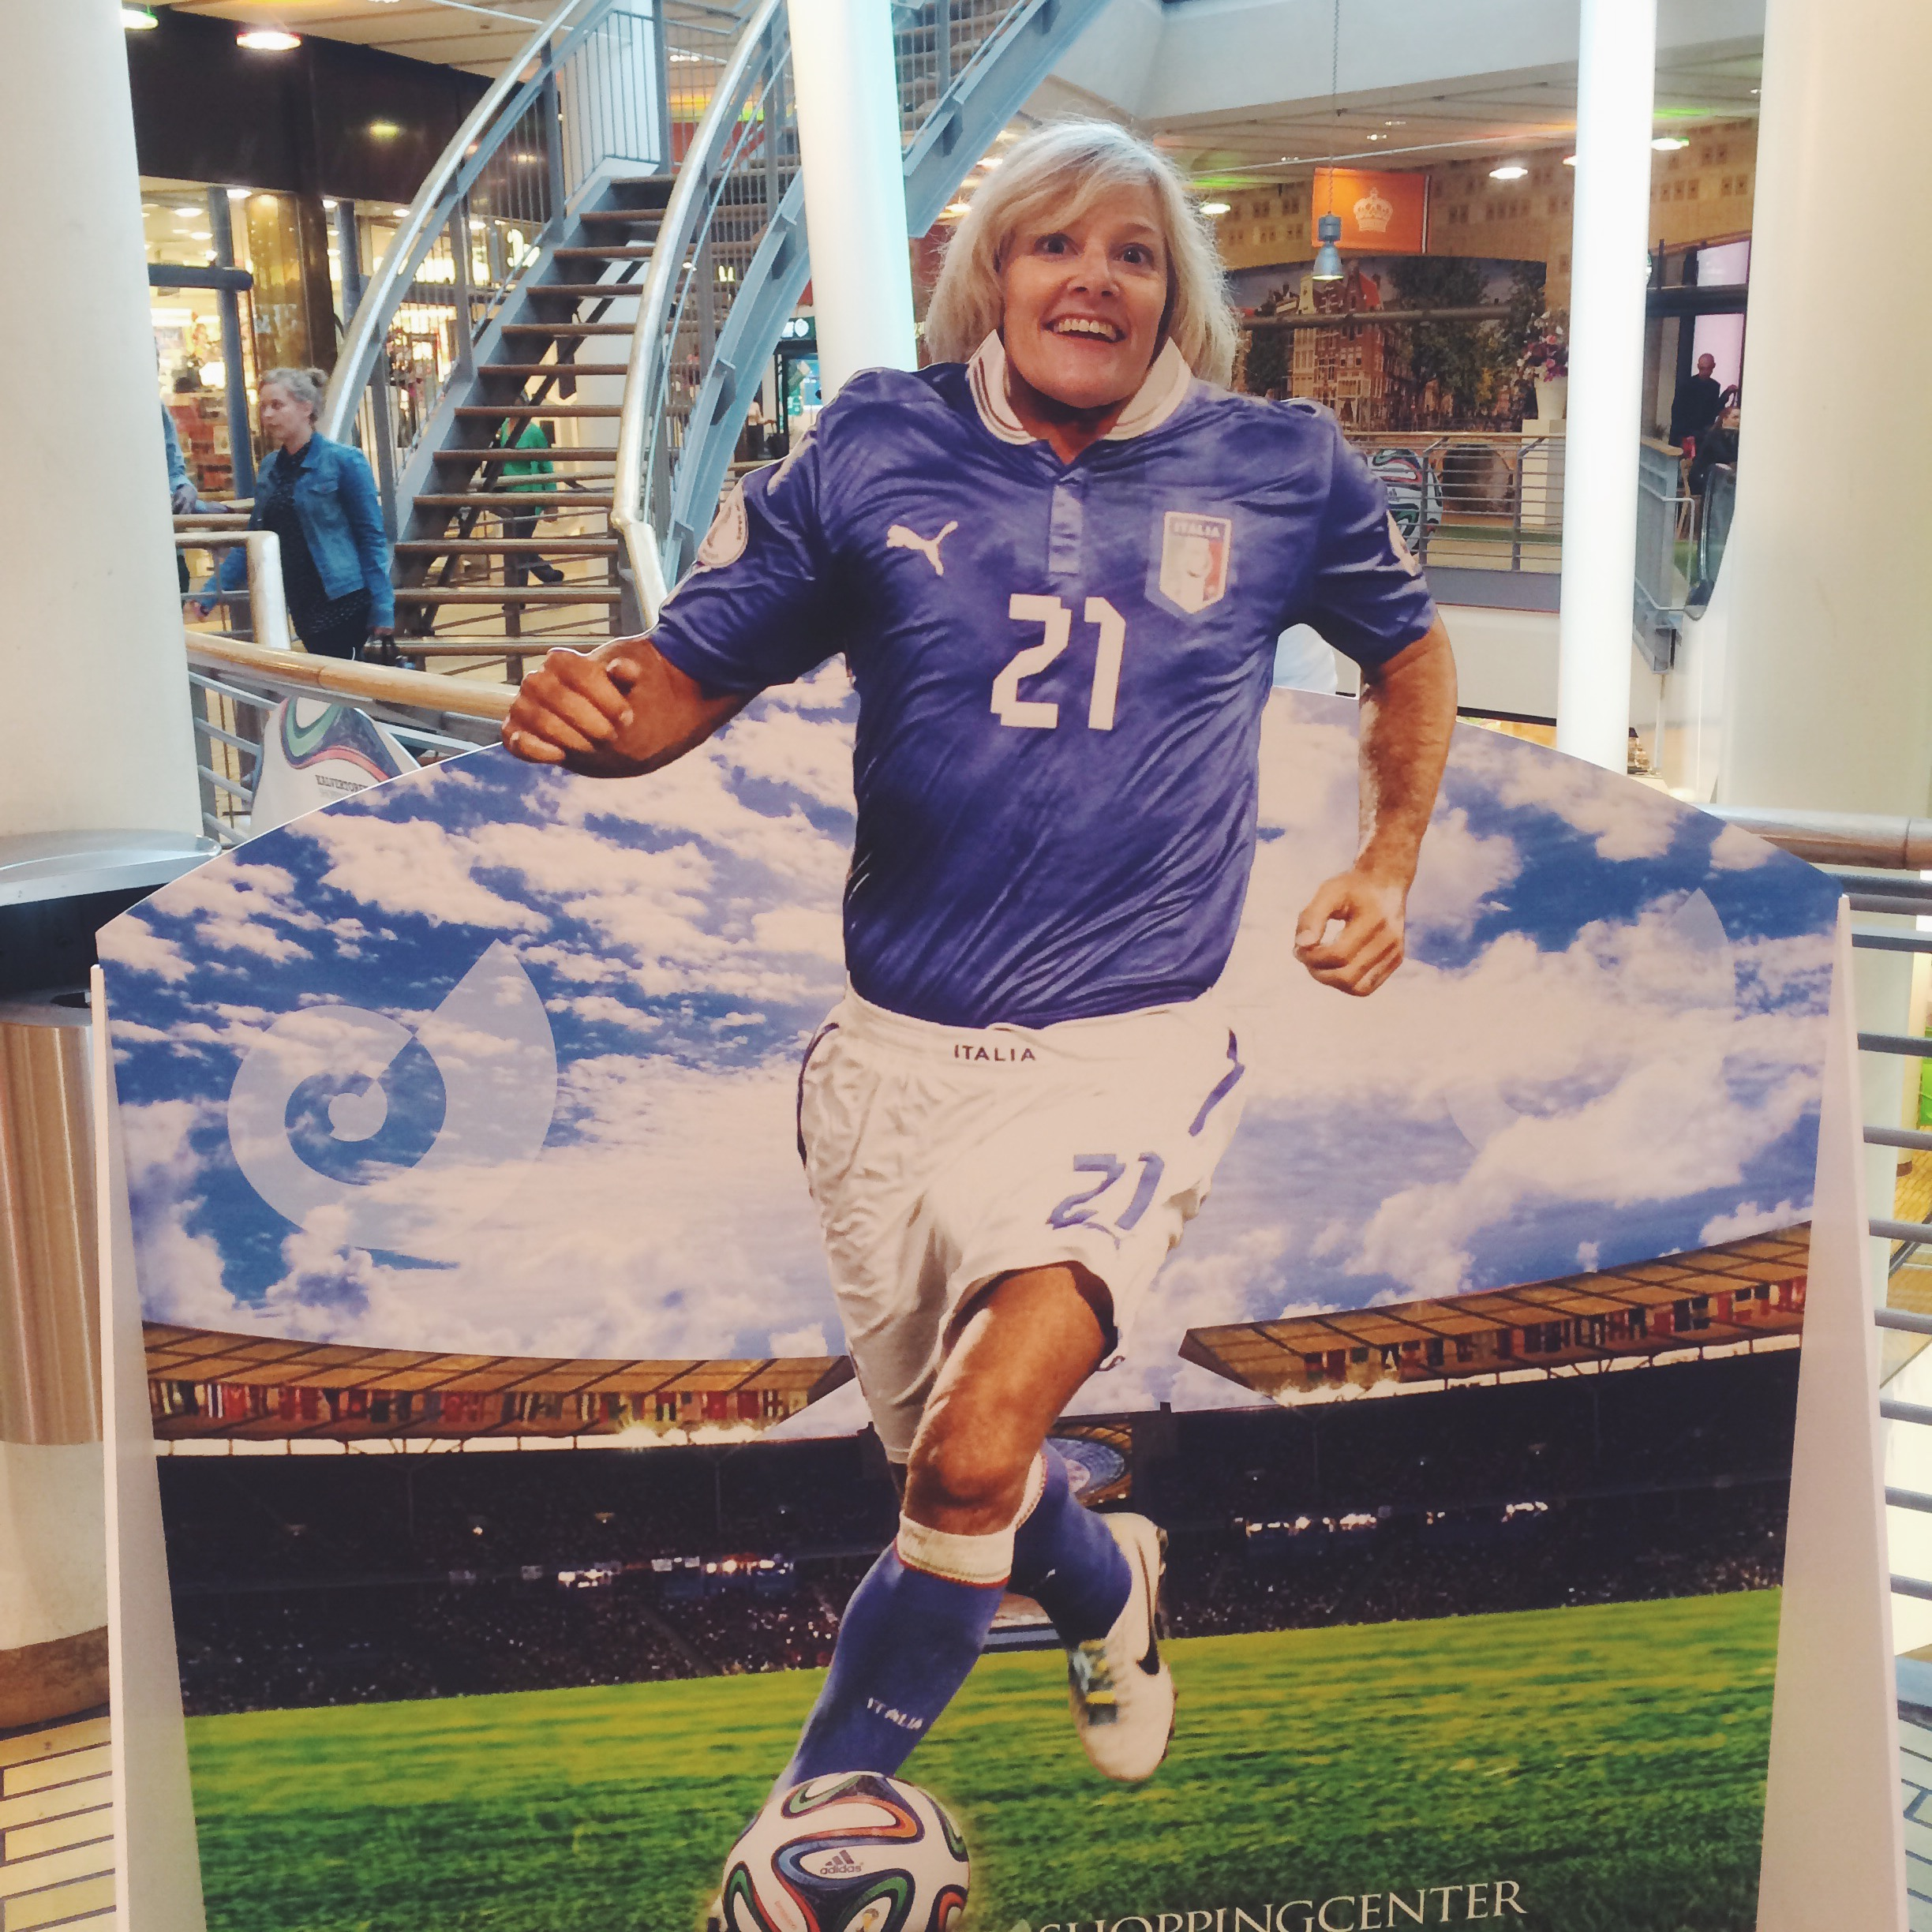 Mom Plays for Italy